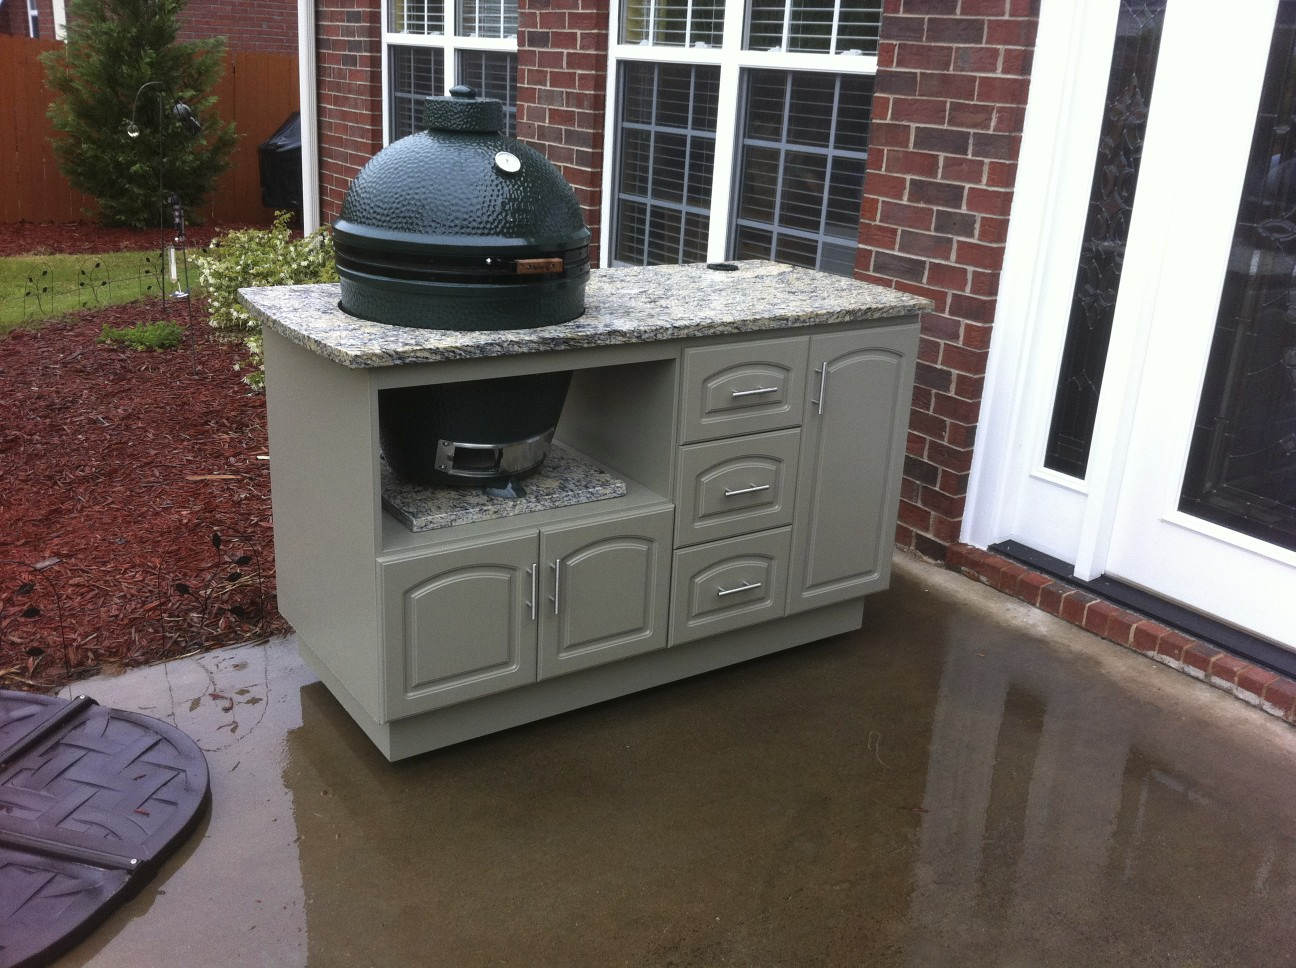 Small Kitchens BBQ Islands Fireside Outdoor Kitchens -  select outdoor kitchens